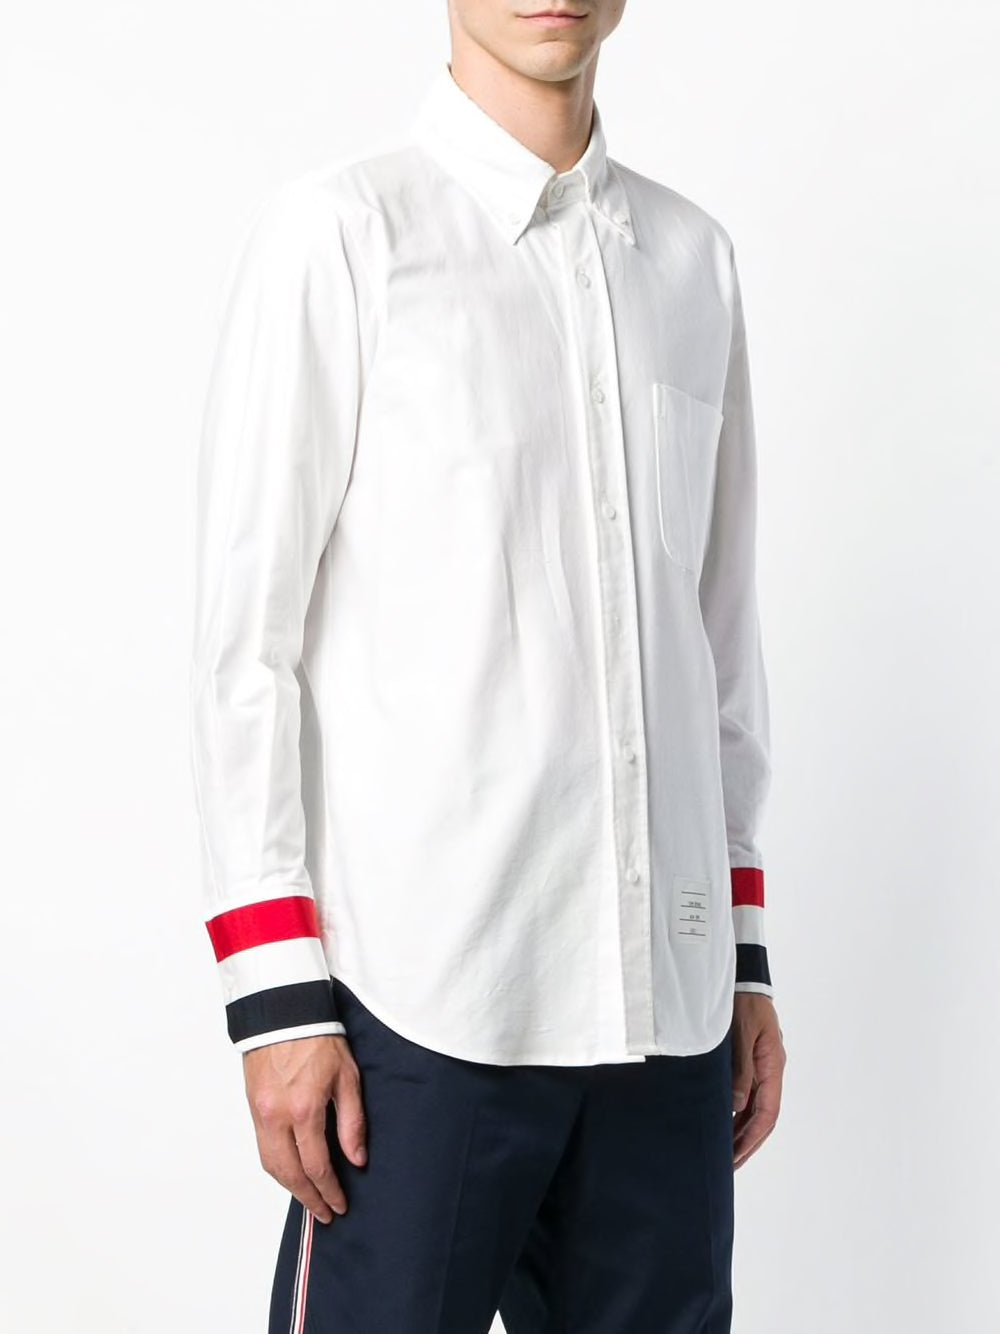 THOM BROWNE MEN GROSGRAIN CUFF STRAIGHT FIT POINT COLLAR BUTTON DOWN LONG SLEEVE SHIRT IN OXFORD